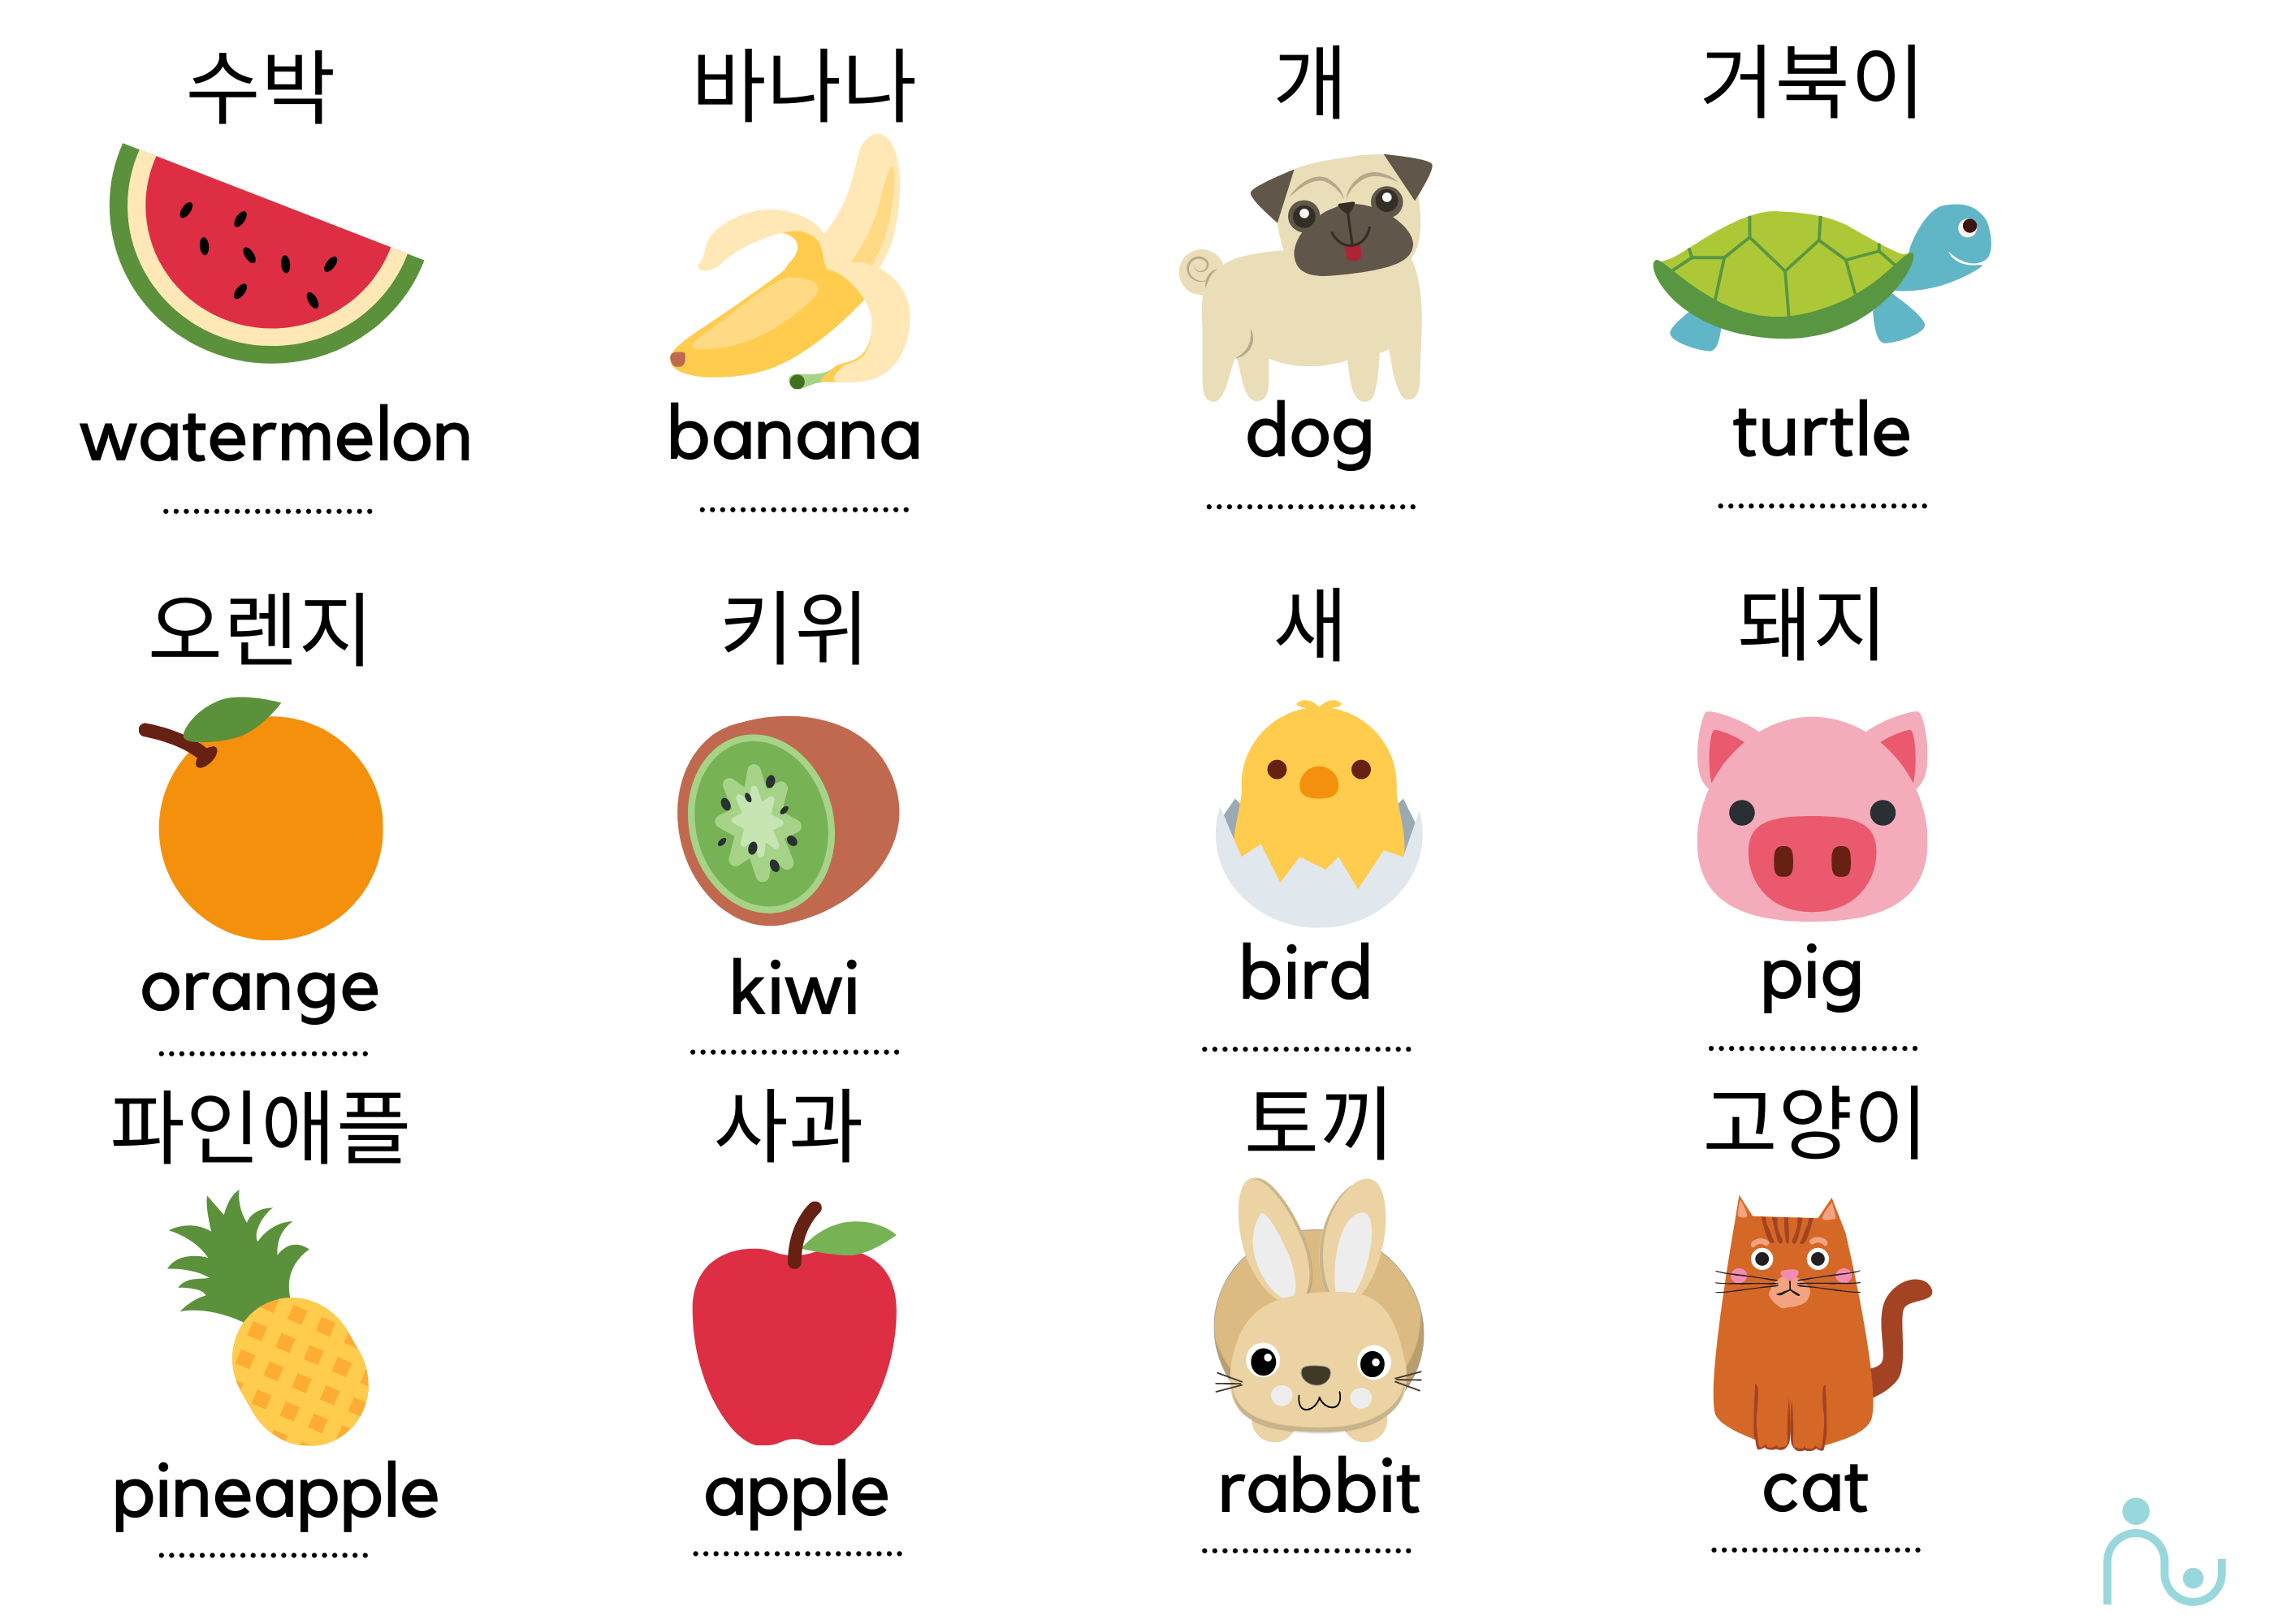 learning a language with fruits and animals